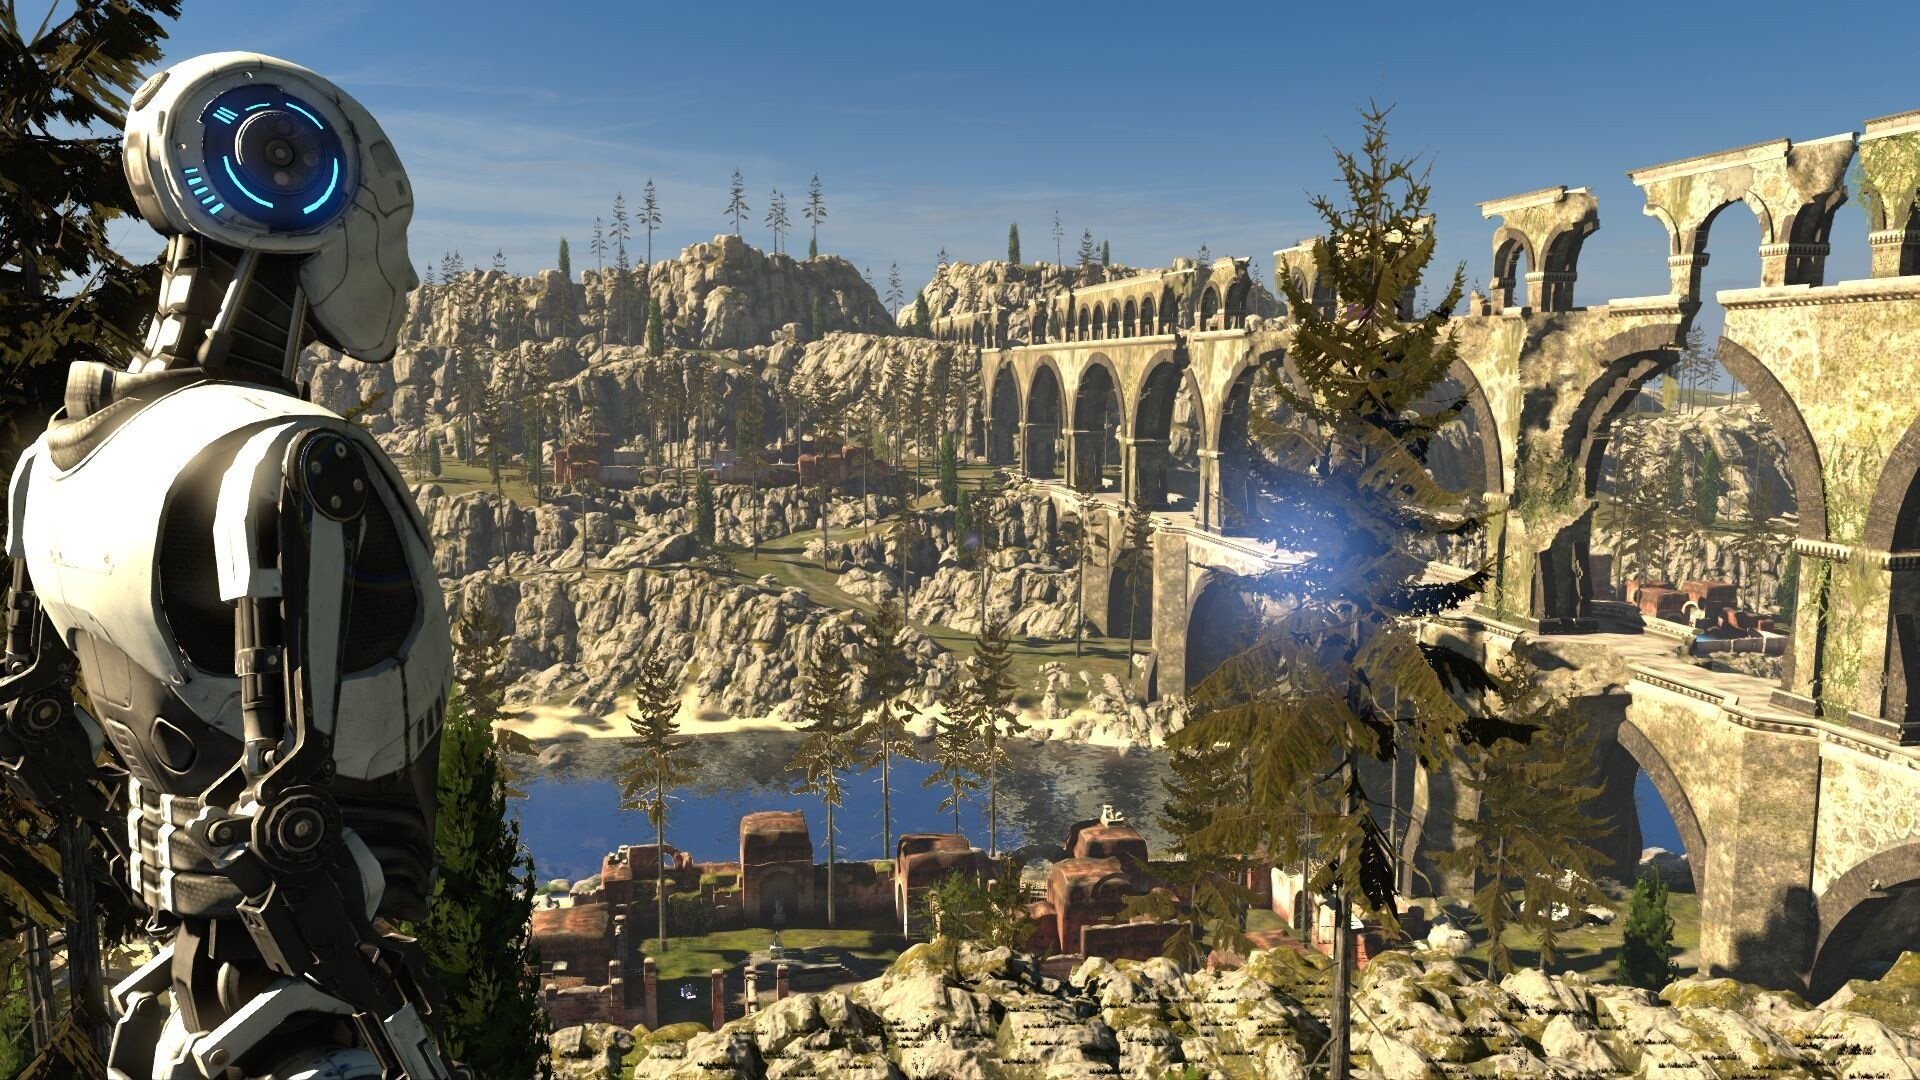 talos principle narrative review - HD 1920×1080